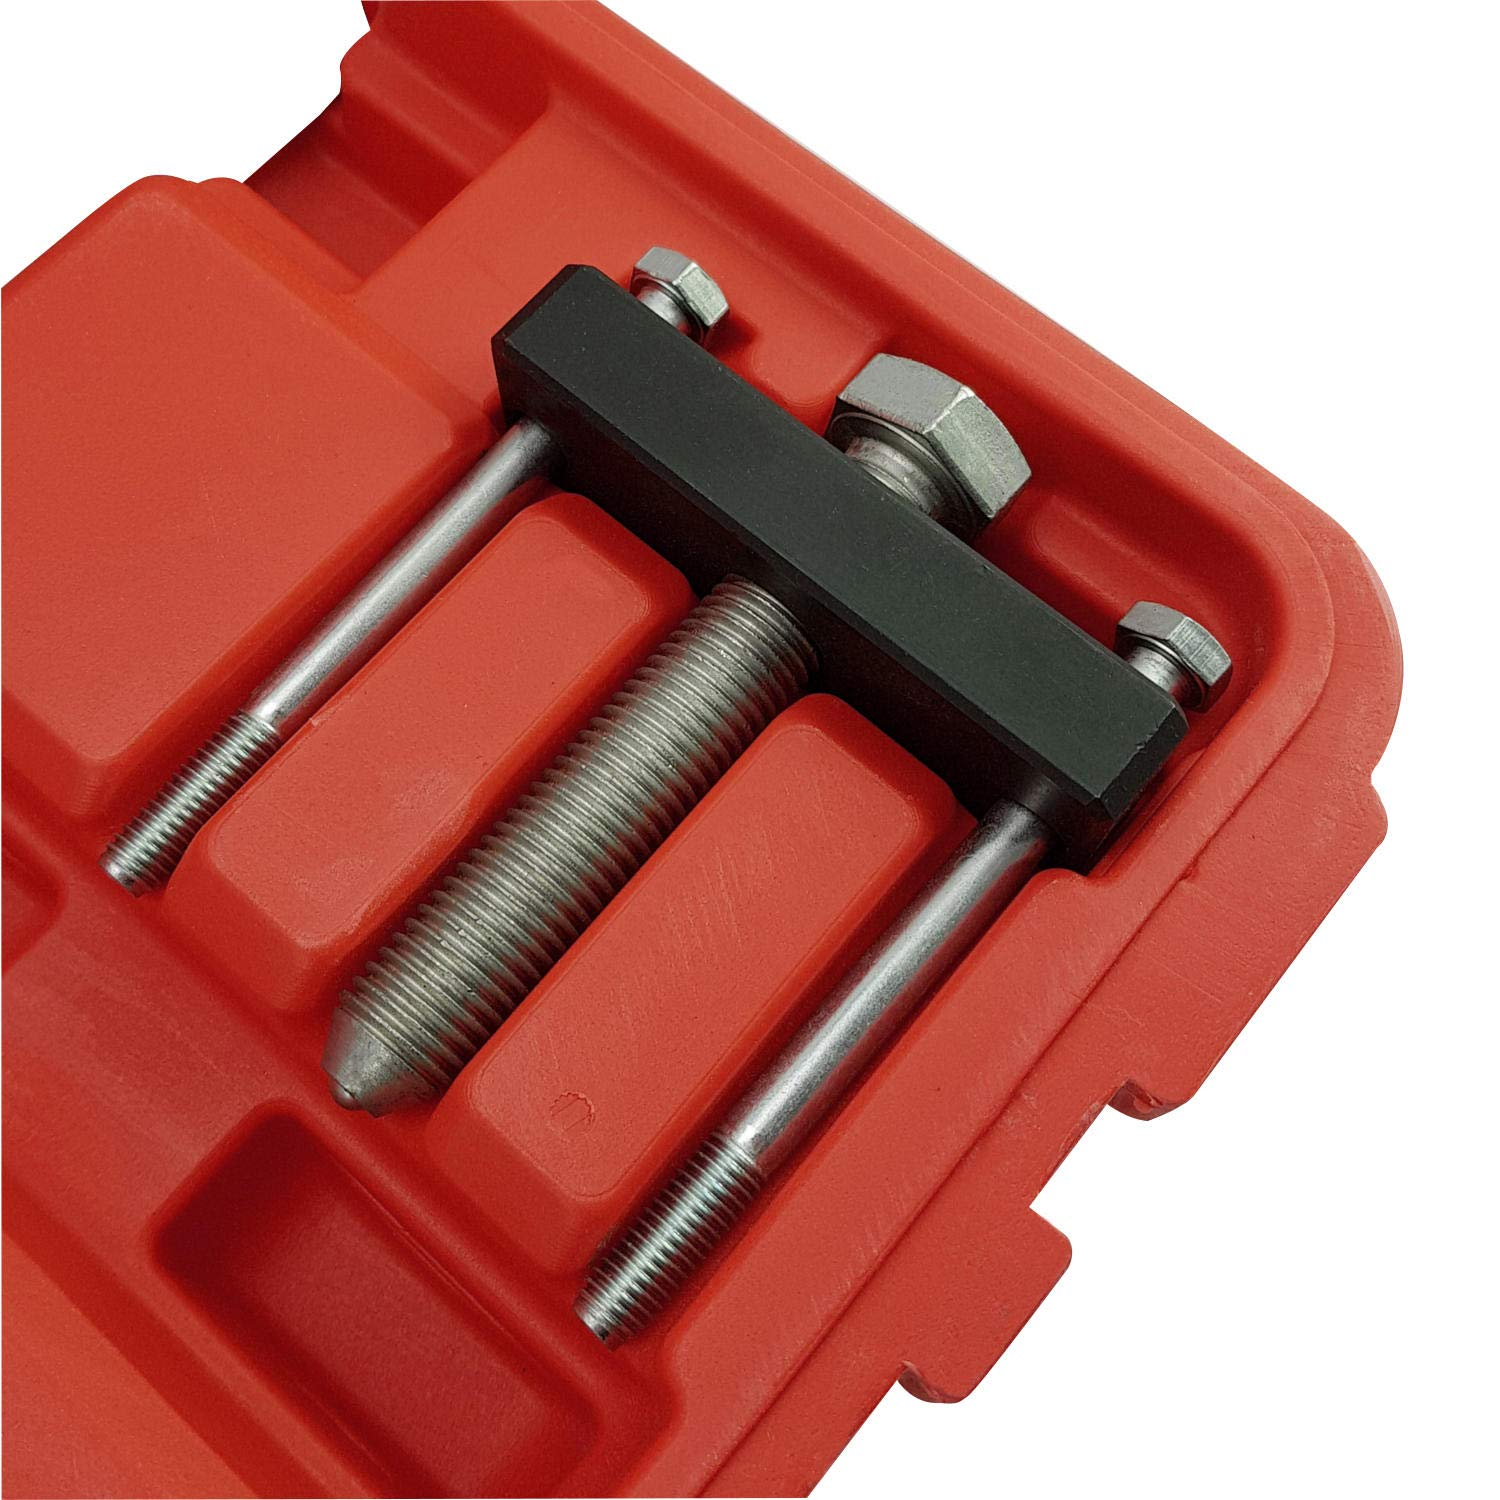 GEPCO Advanced Technology Crank Pulley Tool Set for Jaguar & Land Rover by GEPCO Advanced Technology (Image #3)